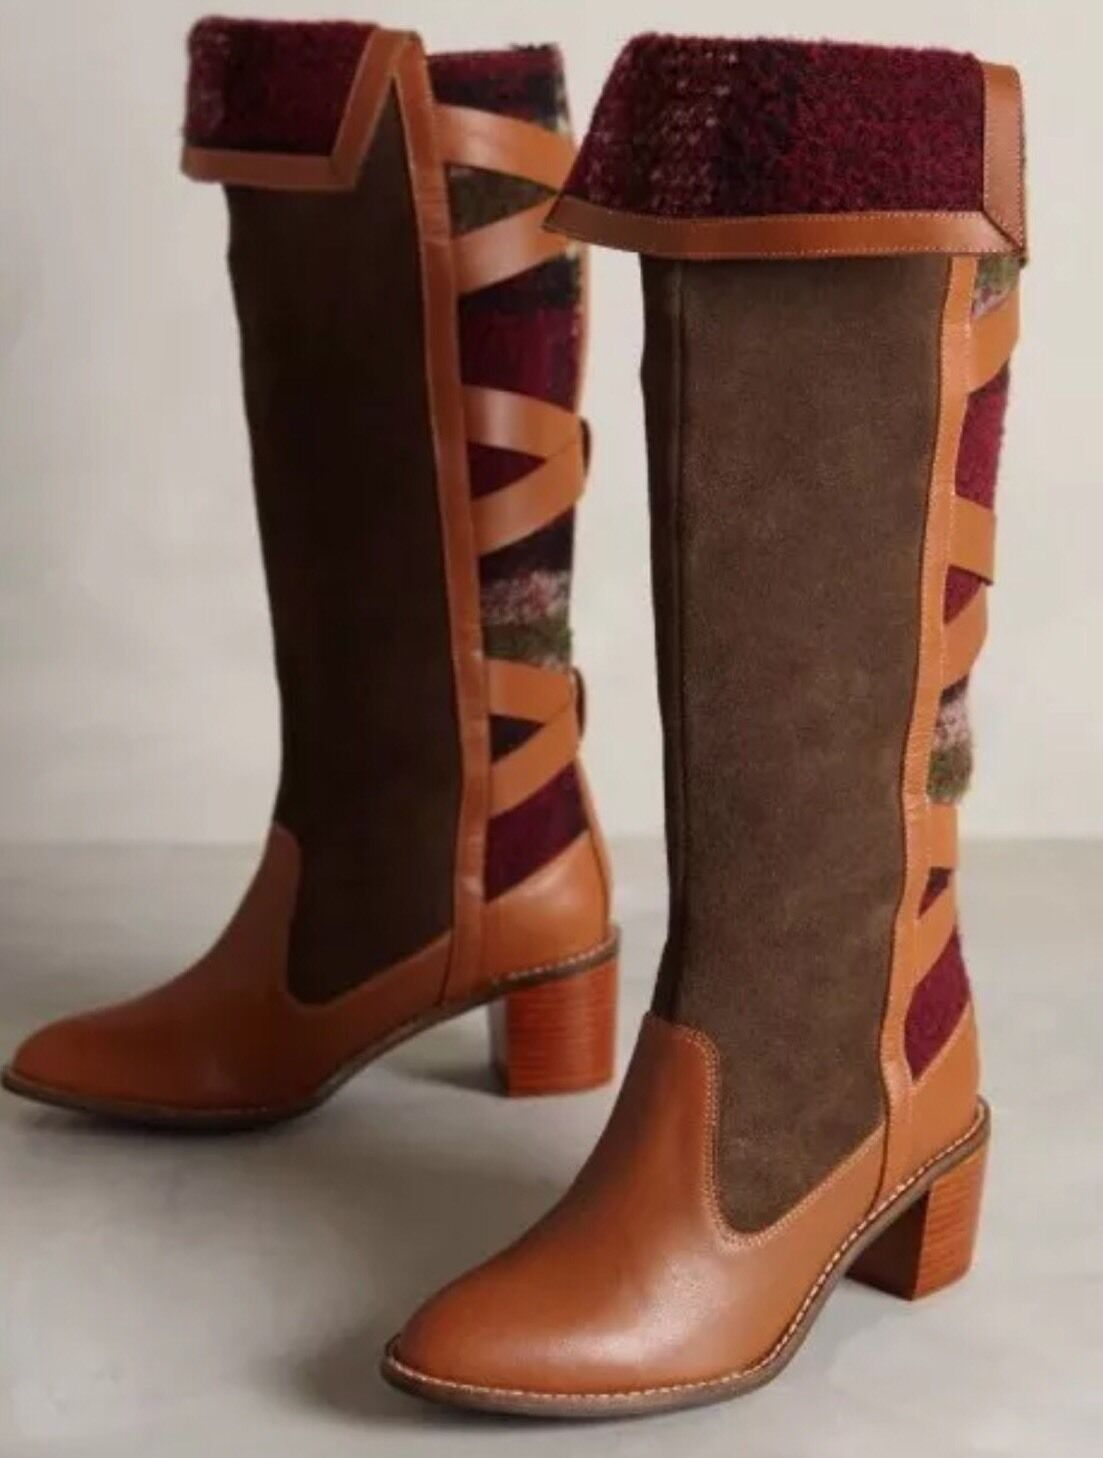 Nuevo anthropologie botas trigo Ridge botas anthropologie Talla 5 f8bd85